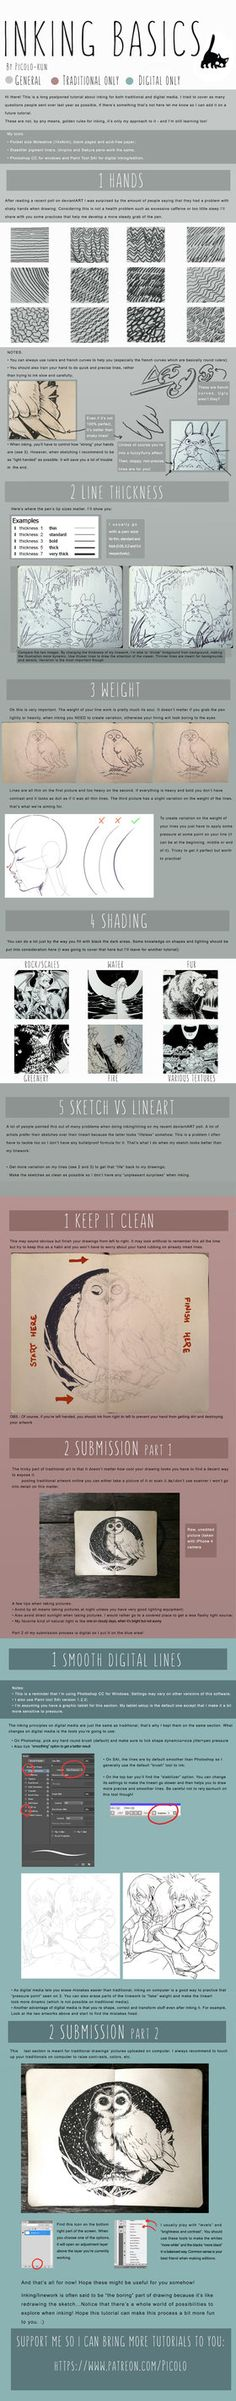 Inking Tutorial by Picolo-kun on DeviantArt